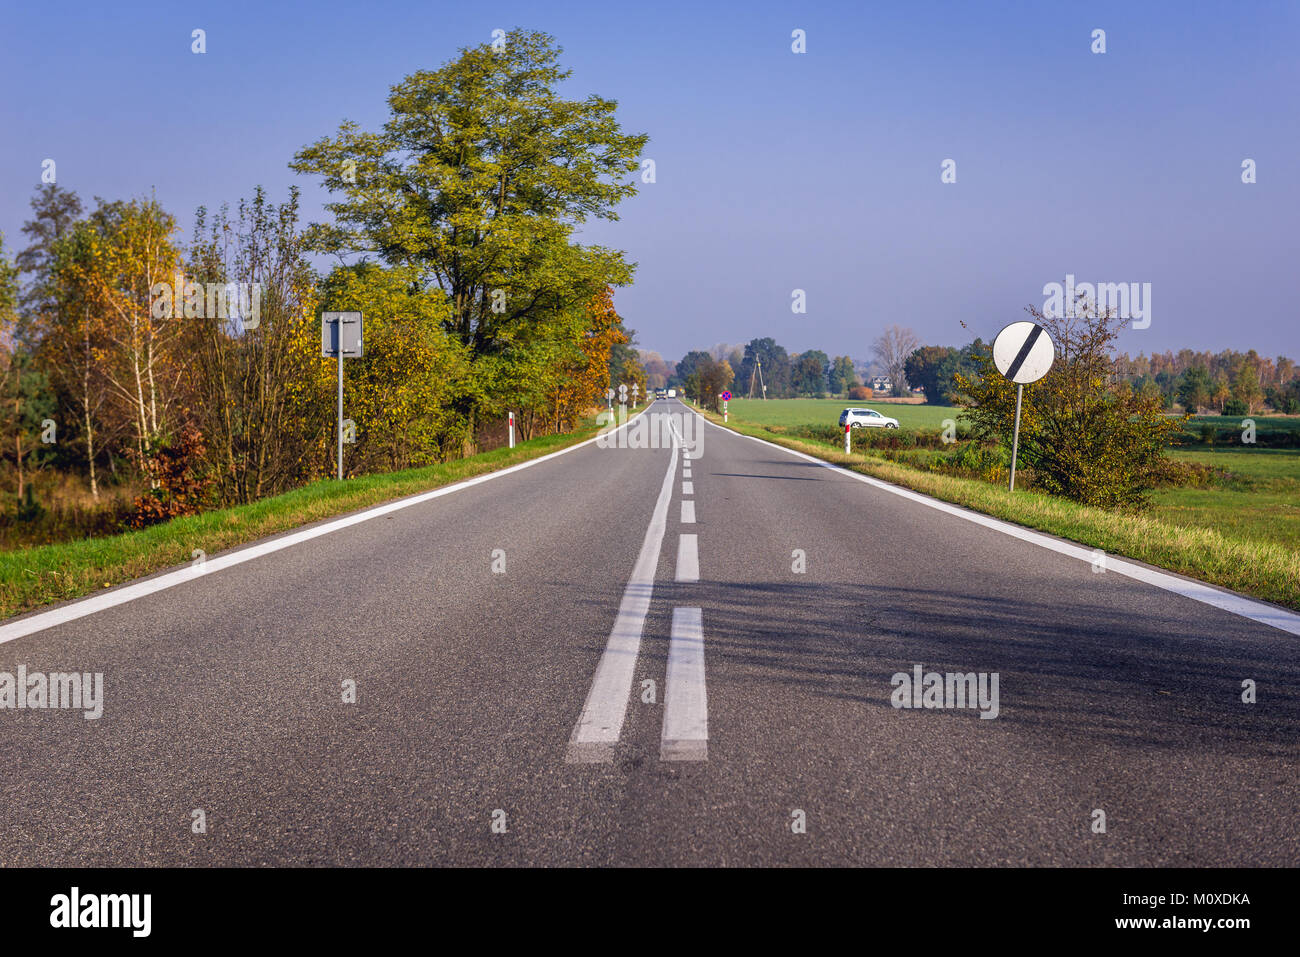 Road near Sladow village in Sochaczew County, Masovia region in Poland - Stock Image